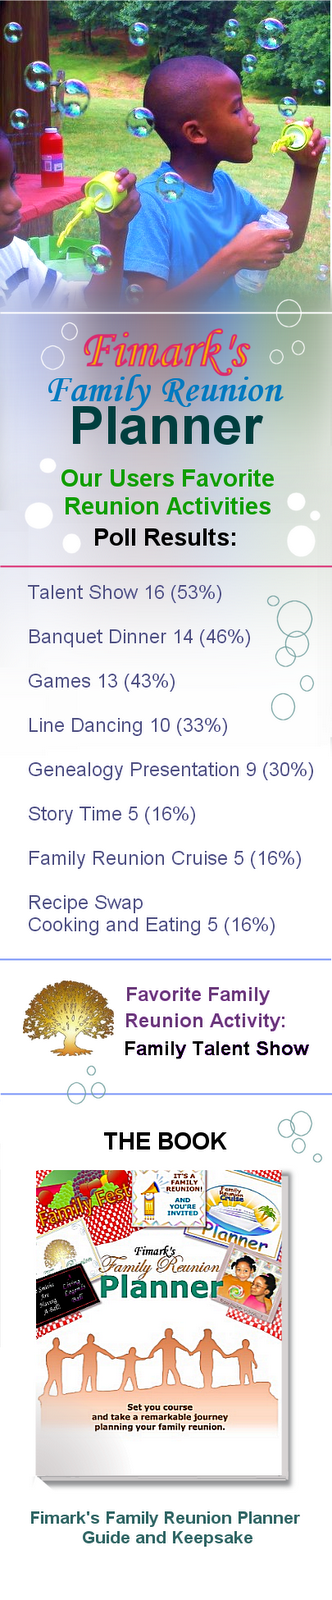 Fimark's Family Reunion Planner Favorite Reunion Activities Survey